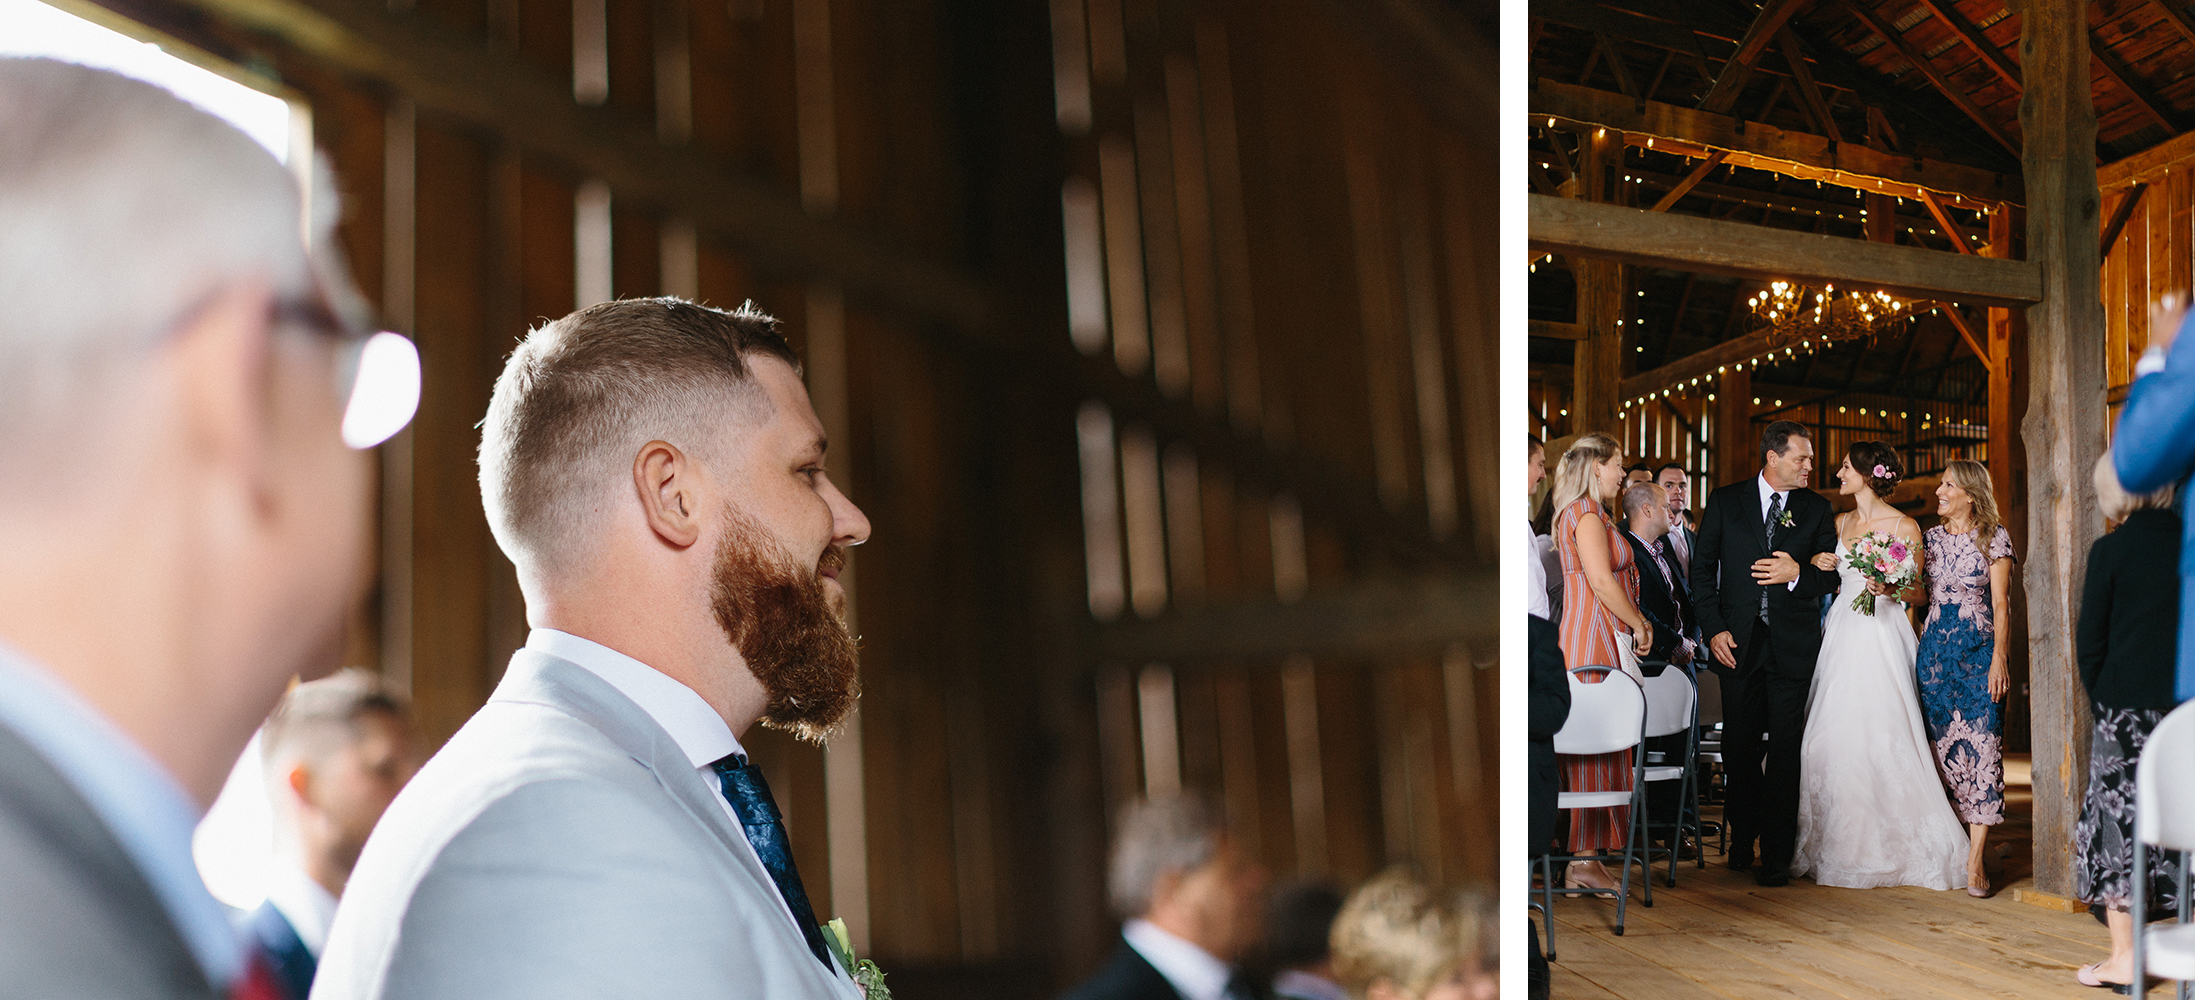 27-Editorial-Toronto-Wedding-Photographers-Photojournalistic-Wedding-Photography-in-Toronto-Ryanne-Hollies-Photography-candid-documentary-bradford-barn-farm-wedding-venue-rustic-inspiration-indoor-ceremony-bridesmaid-and-groomsman.jpg